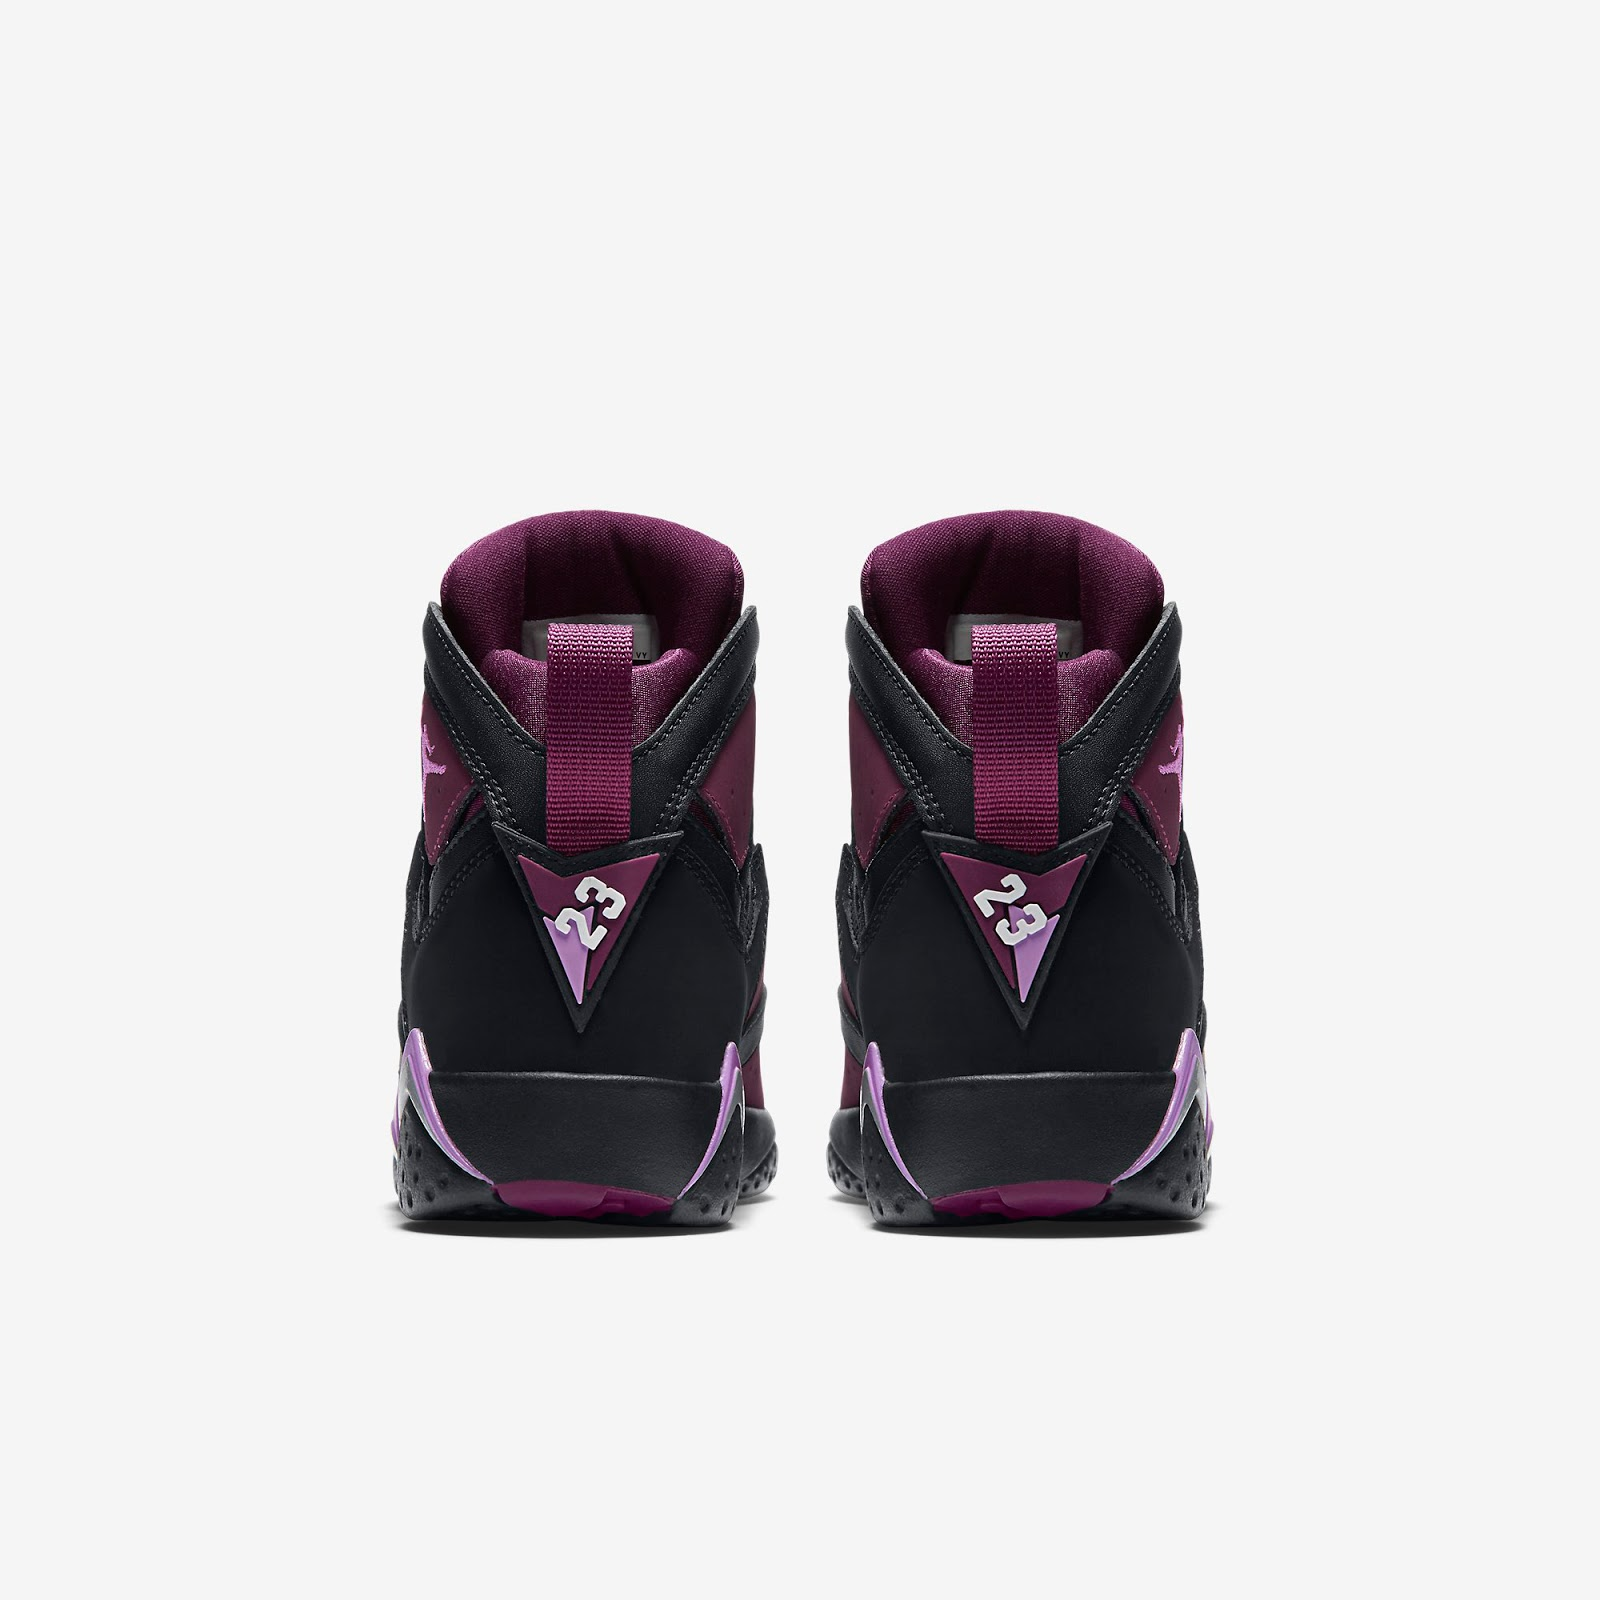 1af5bc18e061 ajordanxi Your  1 Source For Sneaker Release Dates  Girls Air Jordan 7  Retro GG Black Fuchsia Glow-Mulberry-Wolf Grey Release Reminder